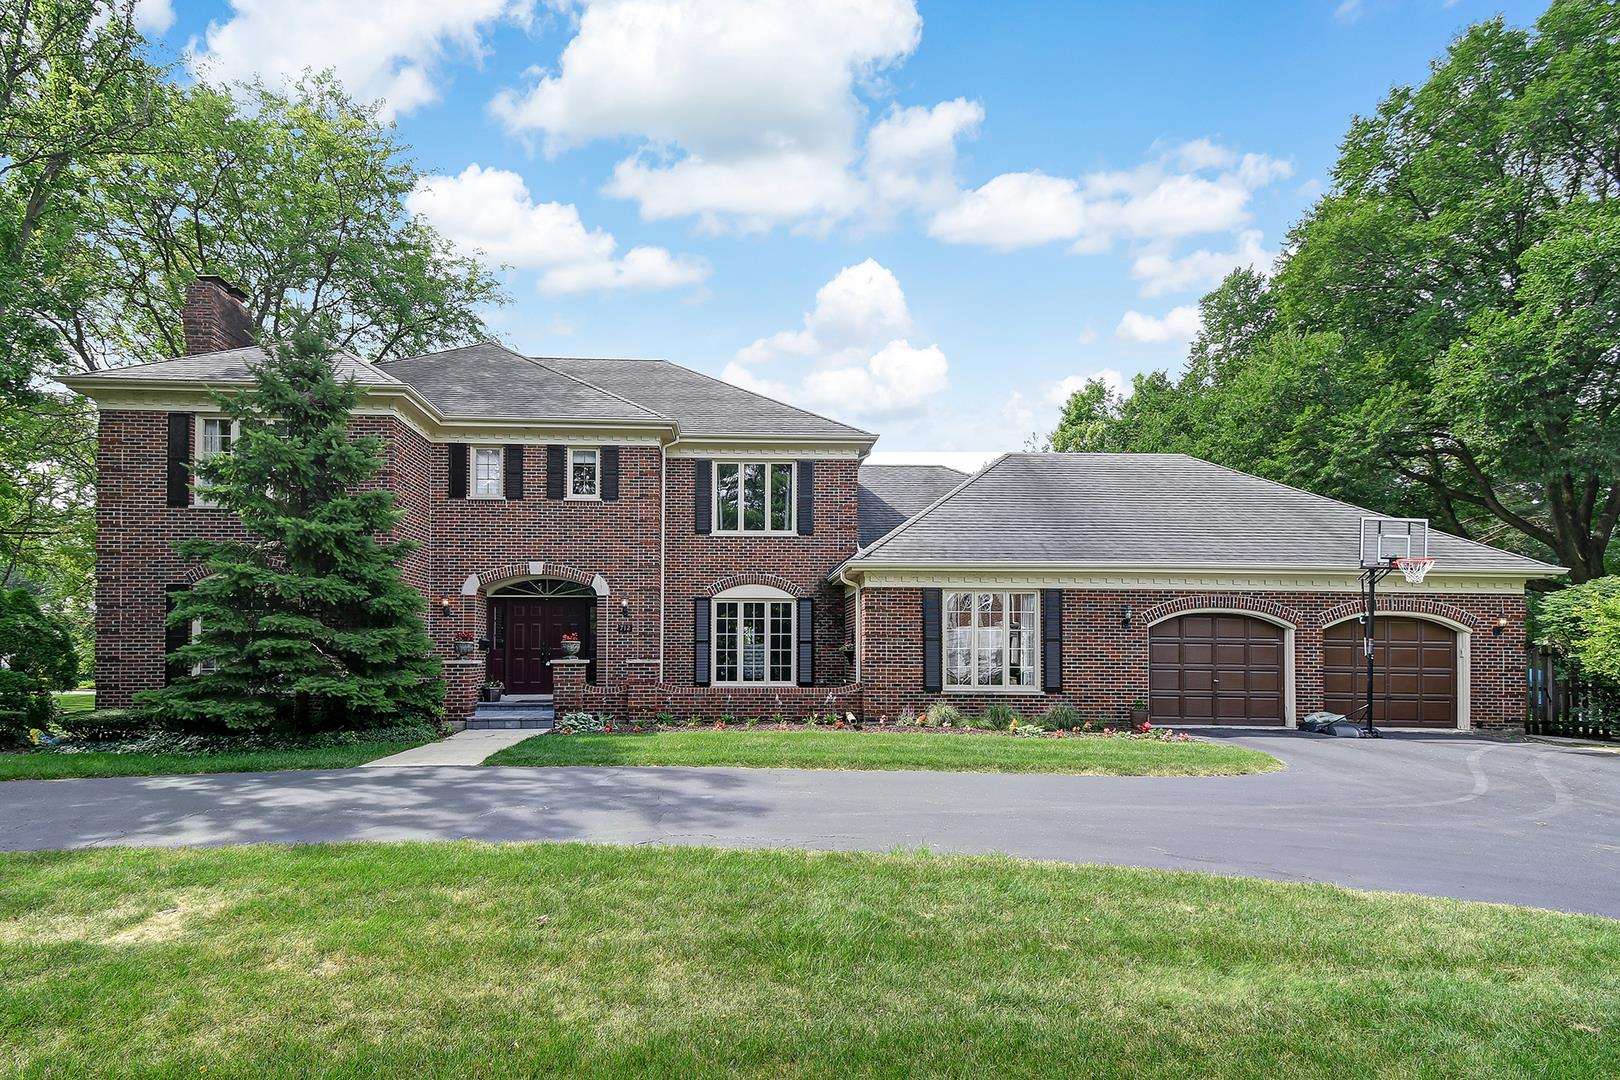 712 E 3rd Street, Hinsdale, IL 60521 - #: 10817392